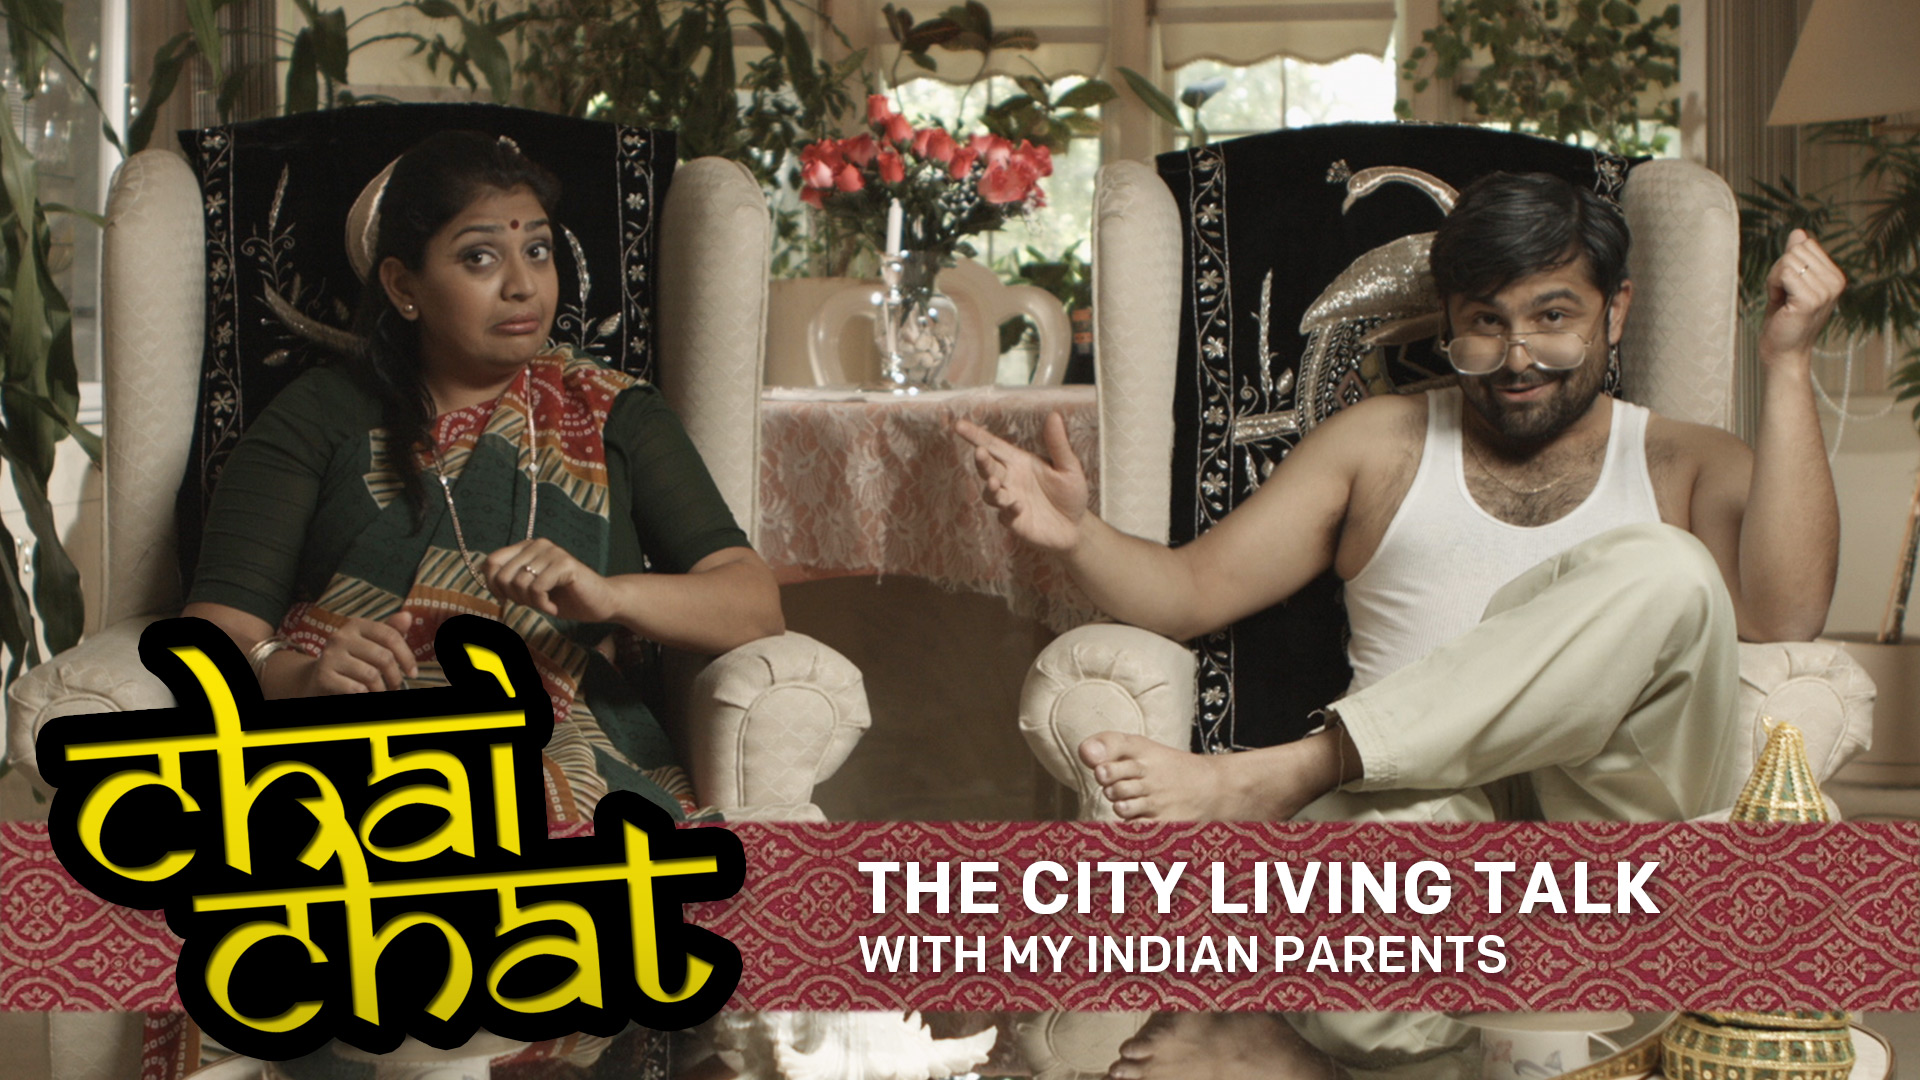 Chai Chat: The City Living Talk – With My Indian Parents